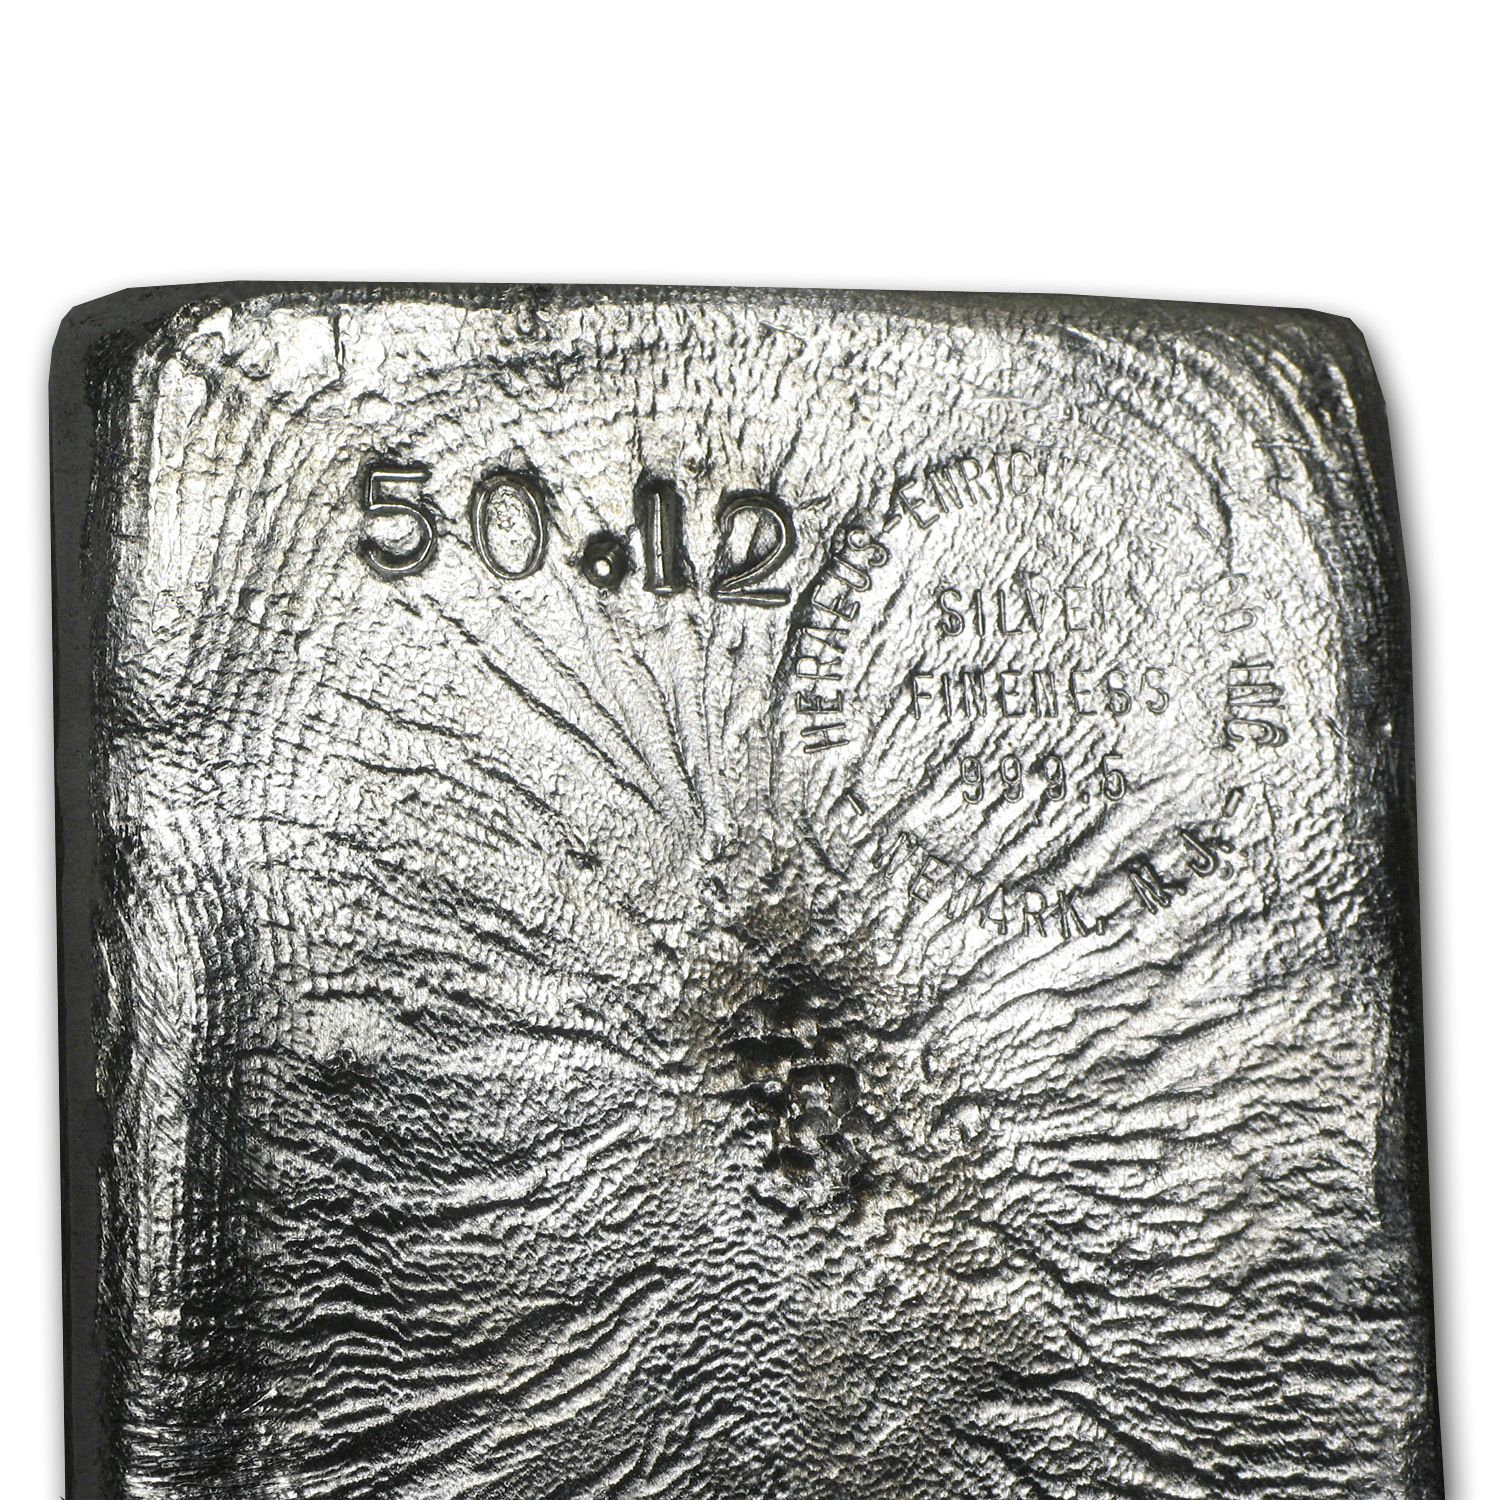 50.12 oz Silver Bar - Heraeus (Poured)